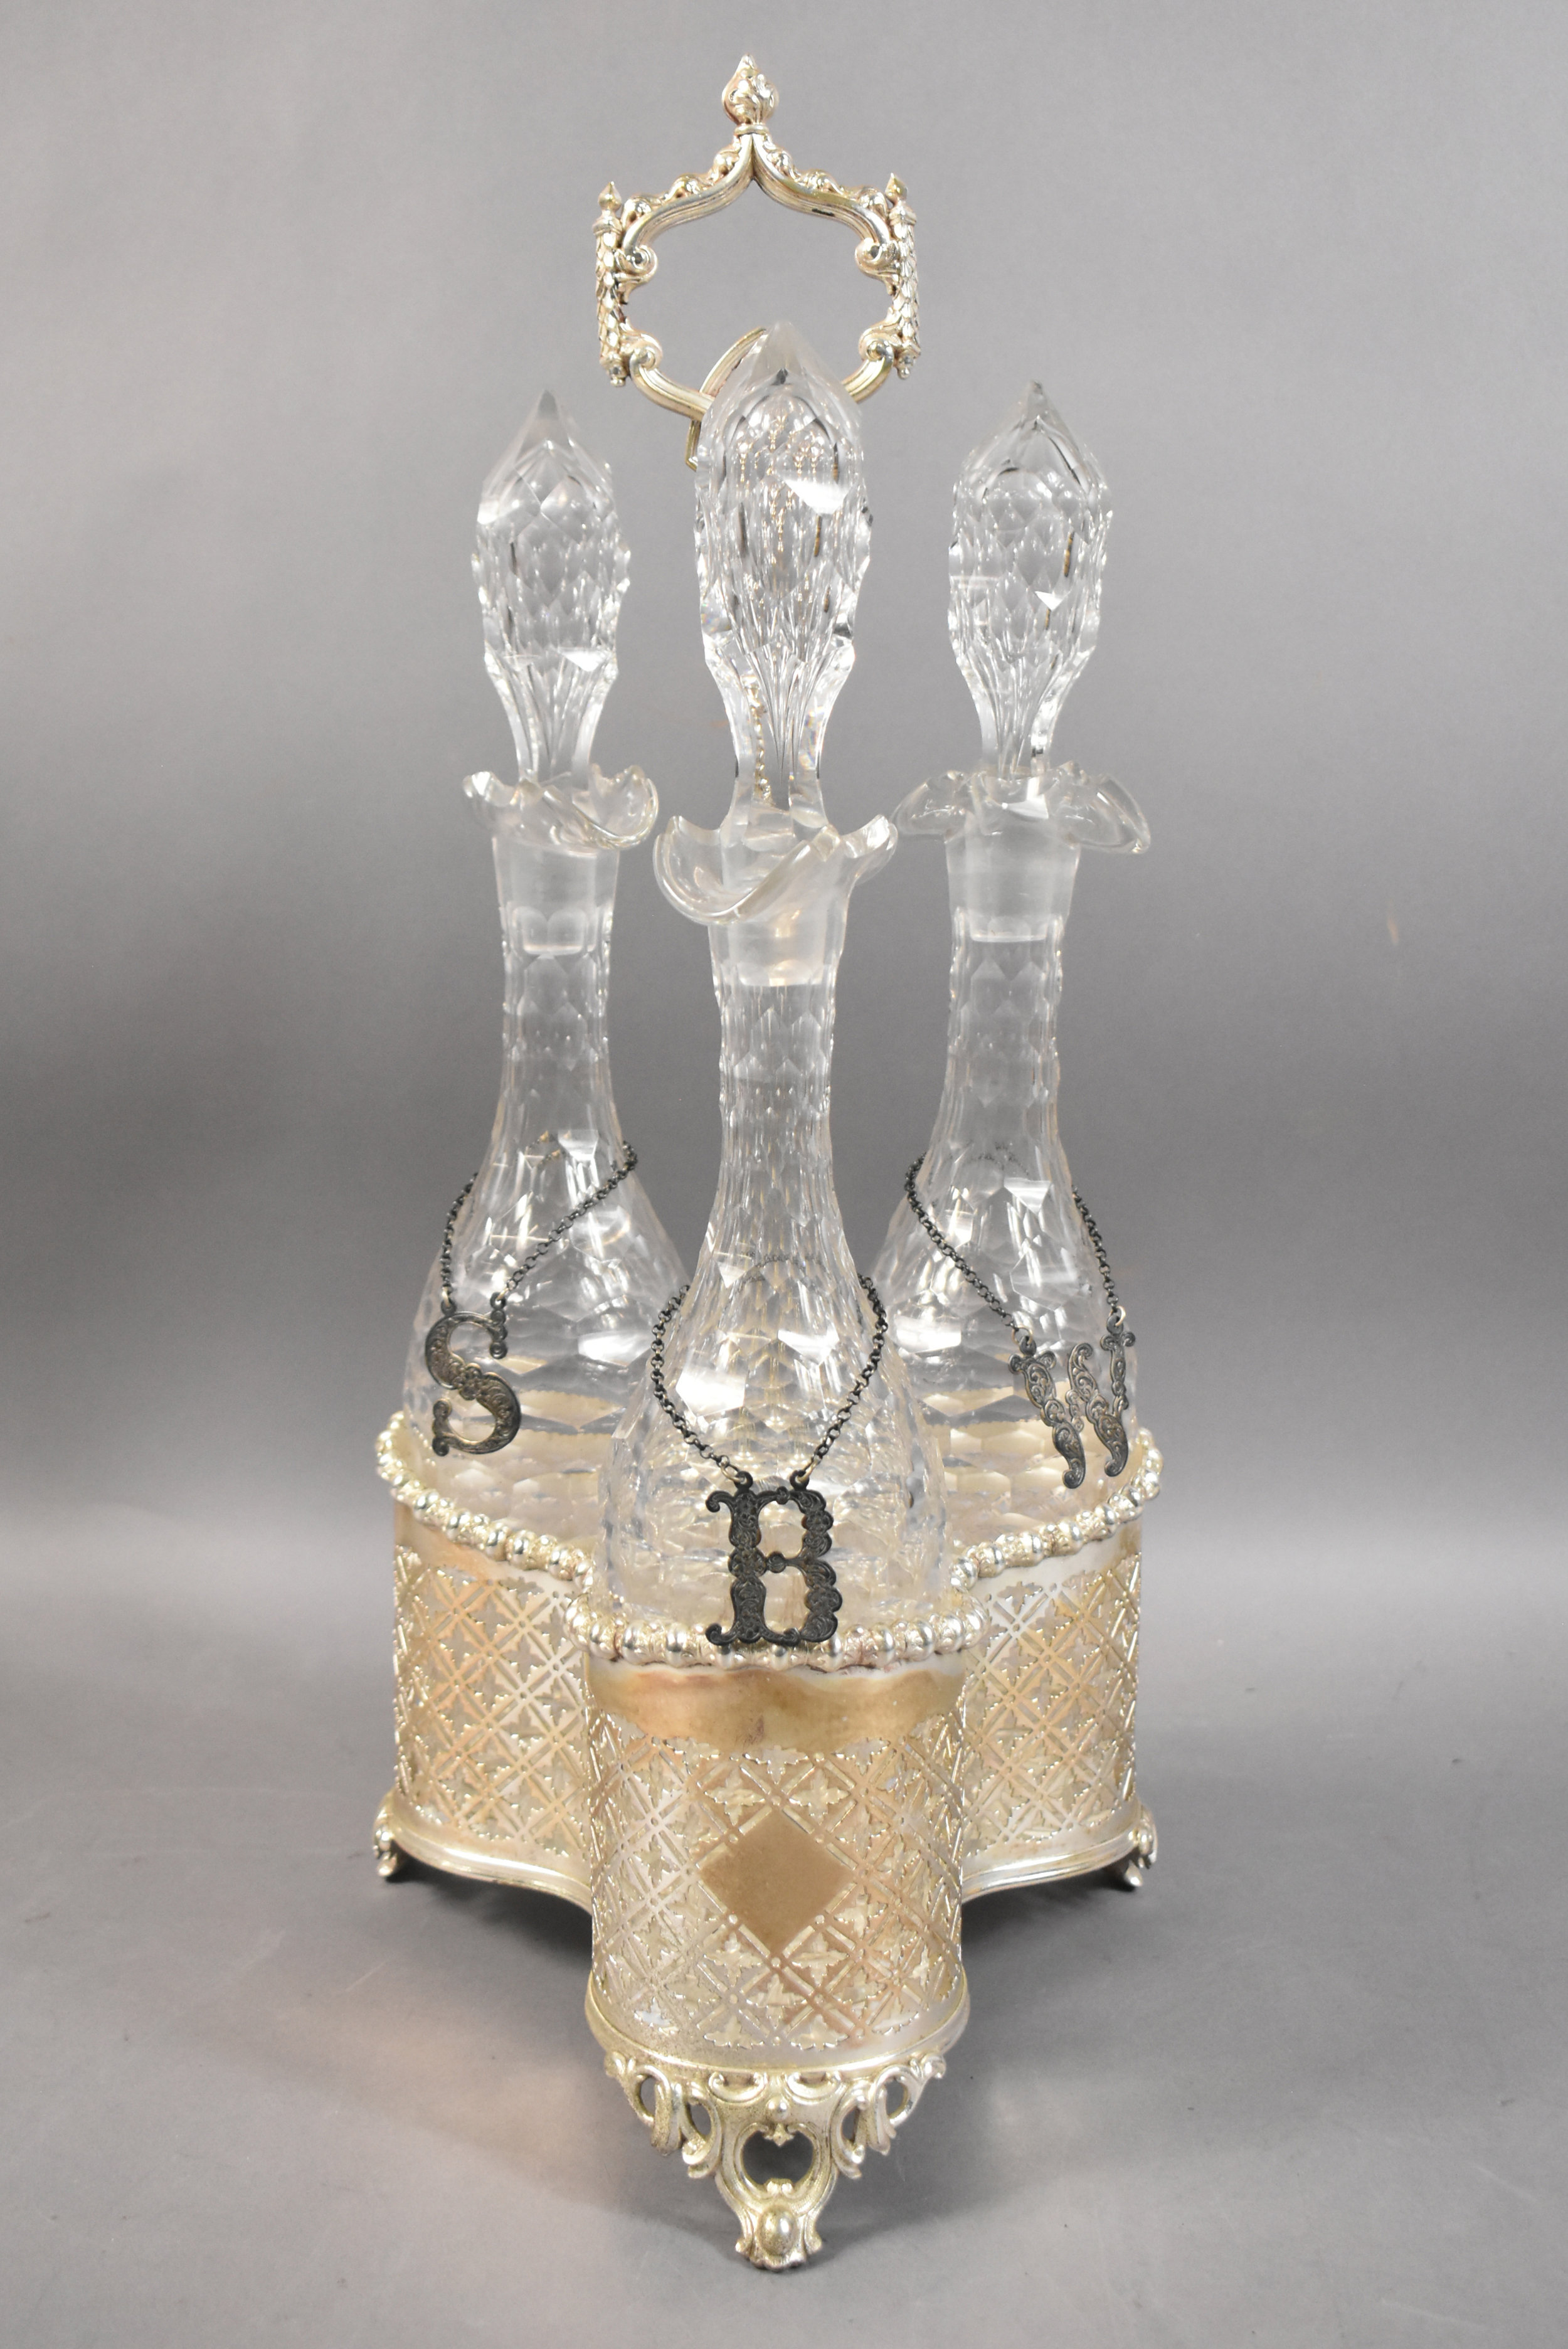 GROUP OF DECANTERS